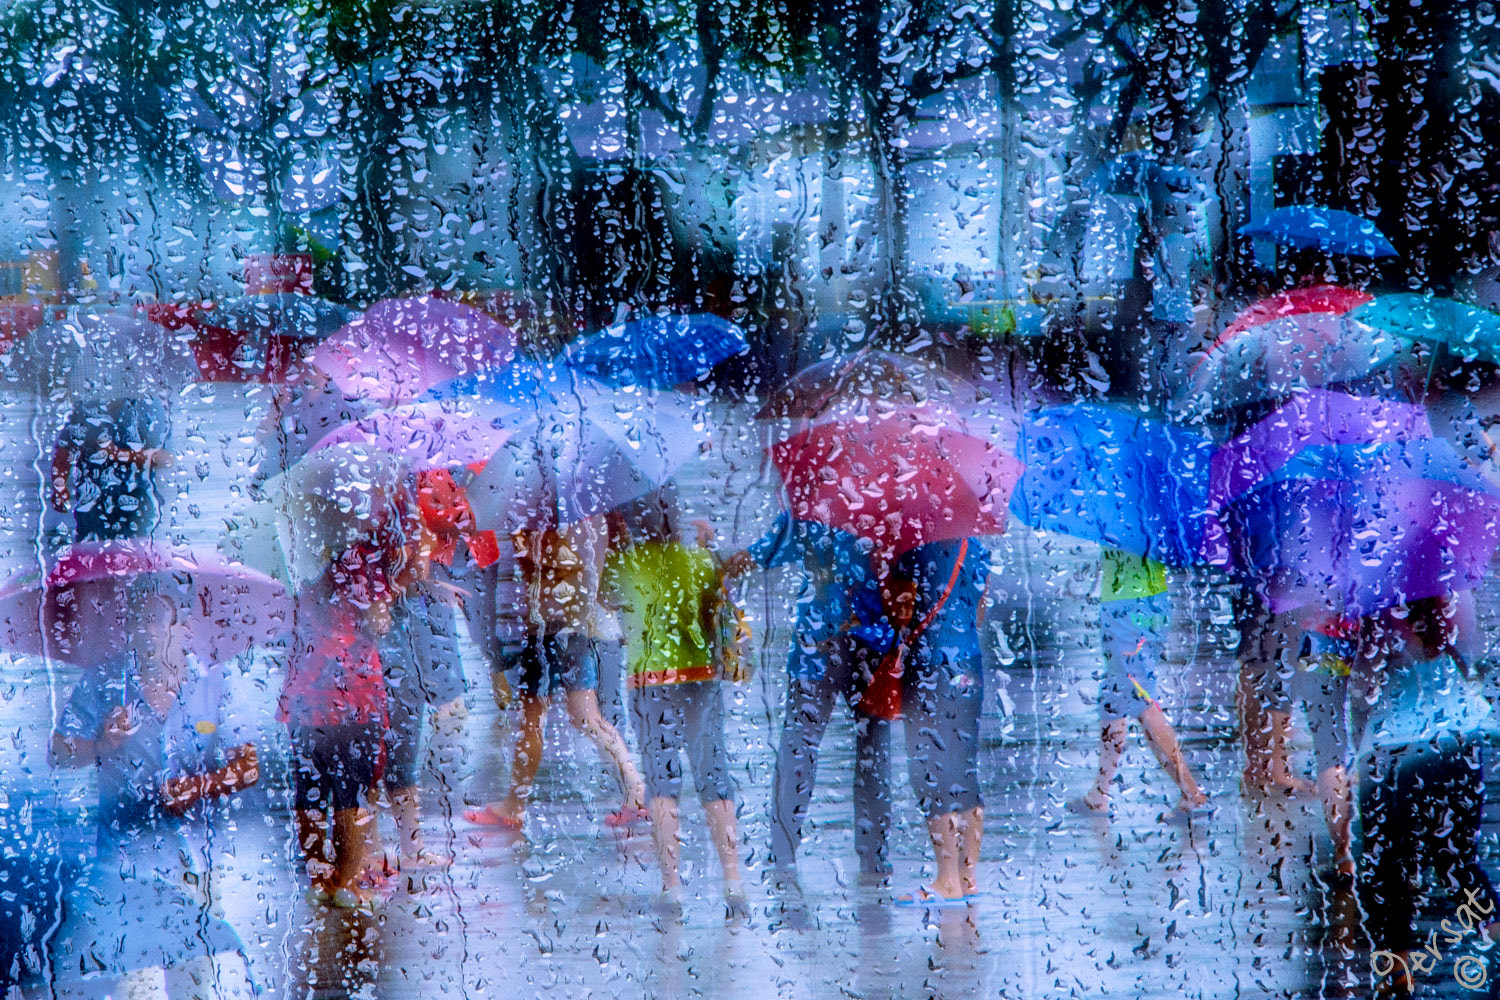 Photograph Another Rainy day by Petra + Harald Neuner on 500px